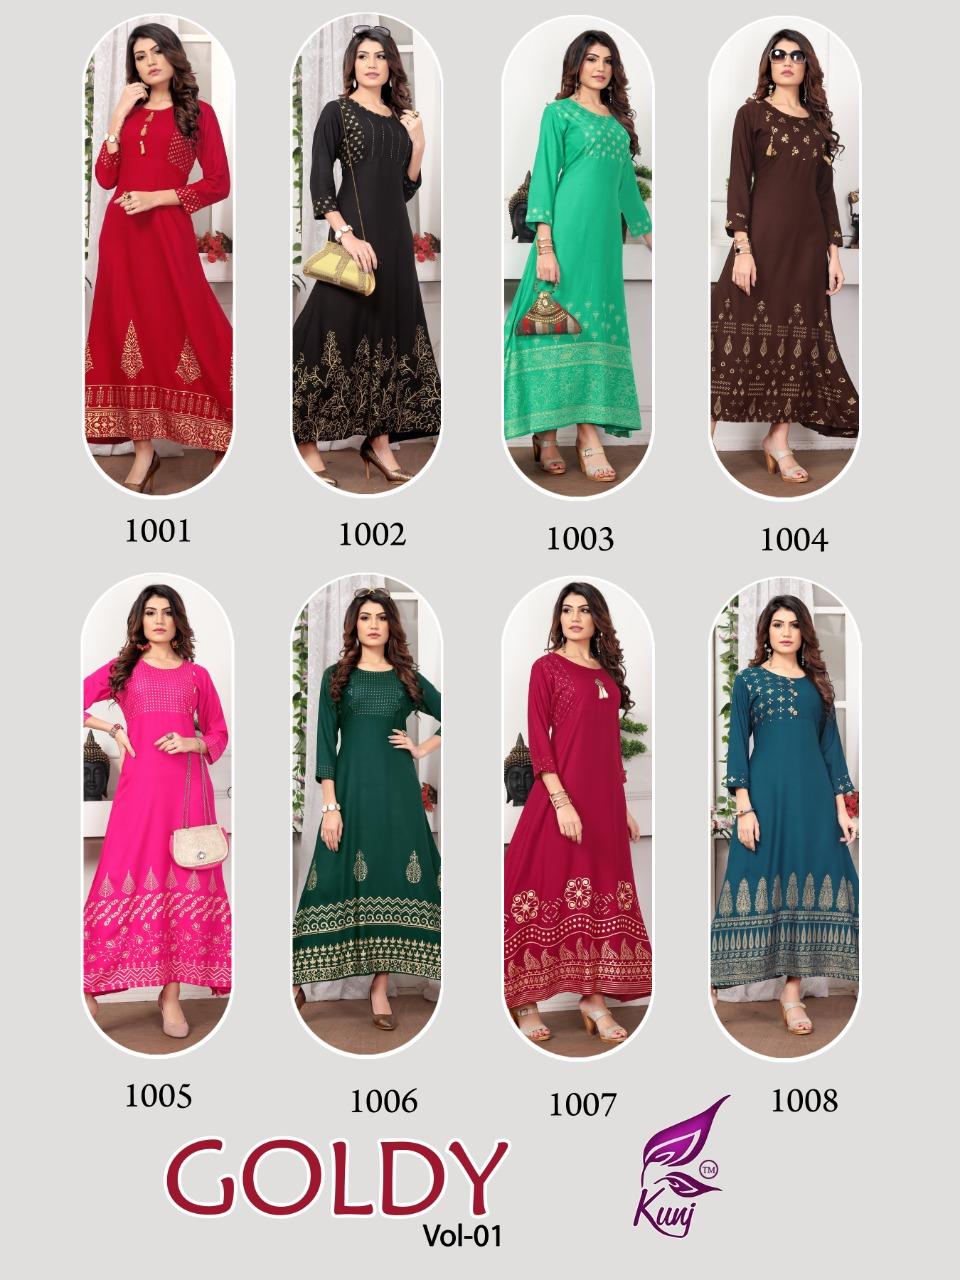 Kunj Goldy 1 collection 9